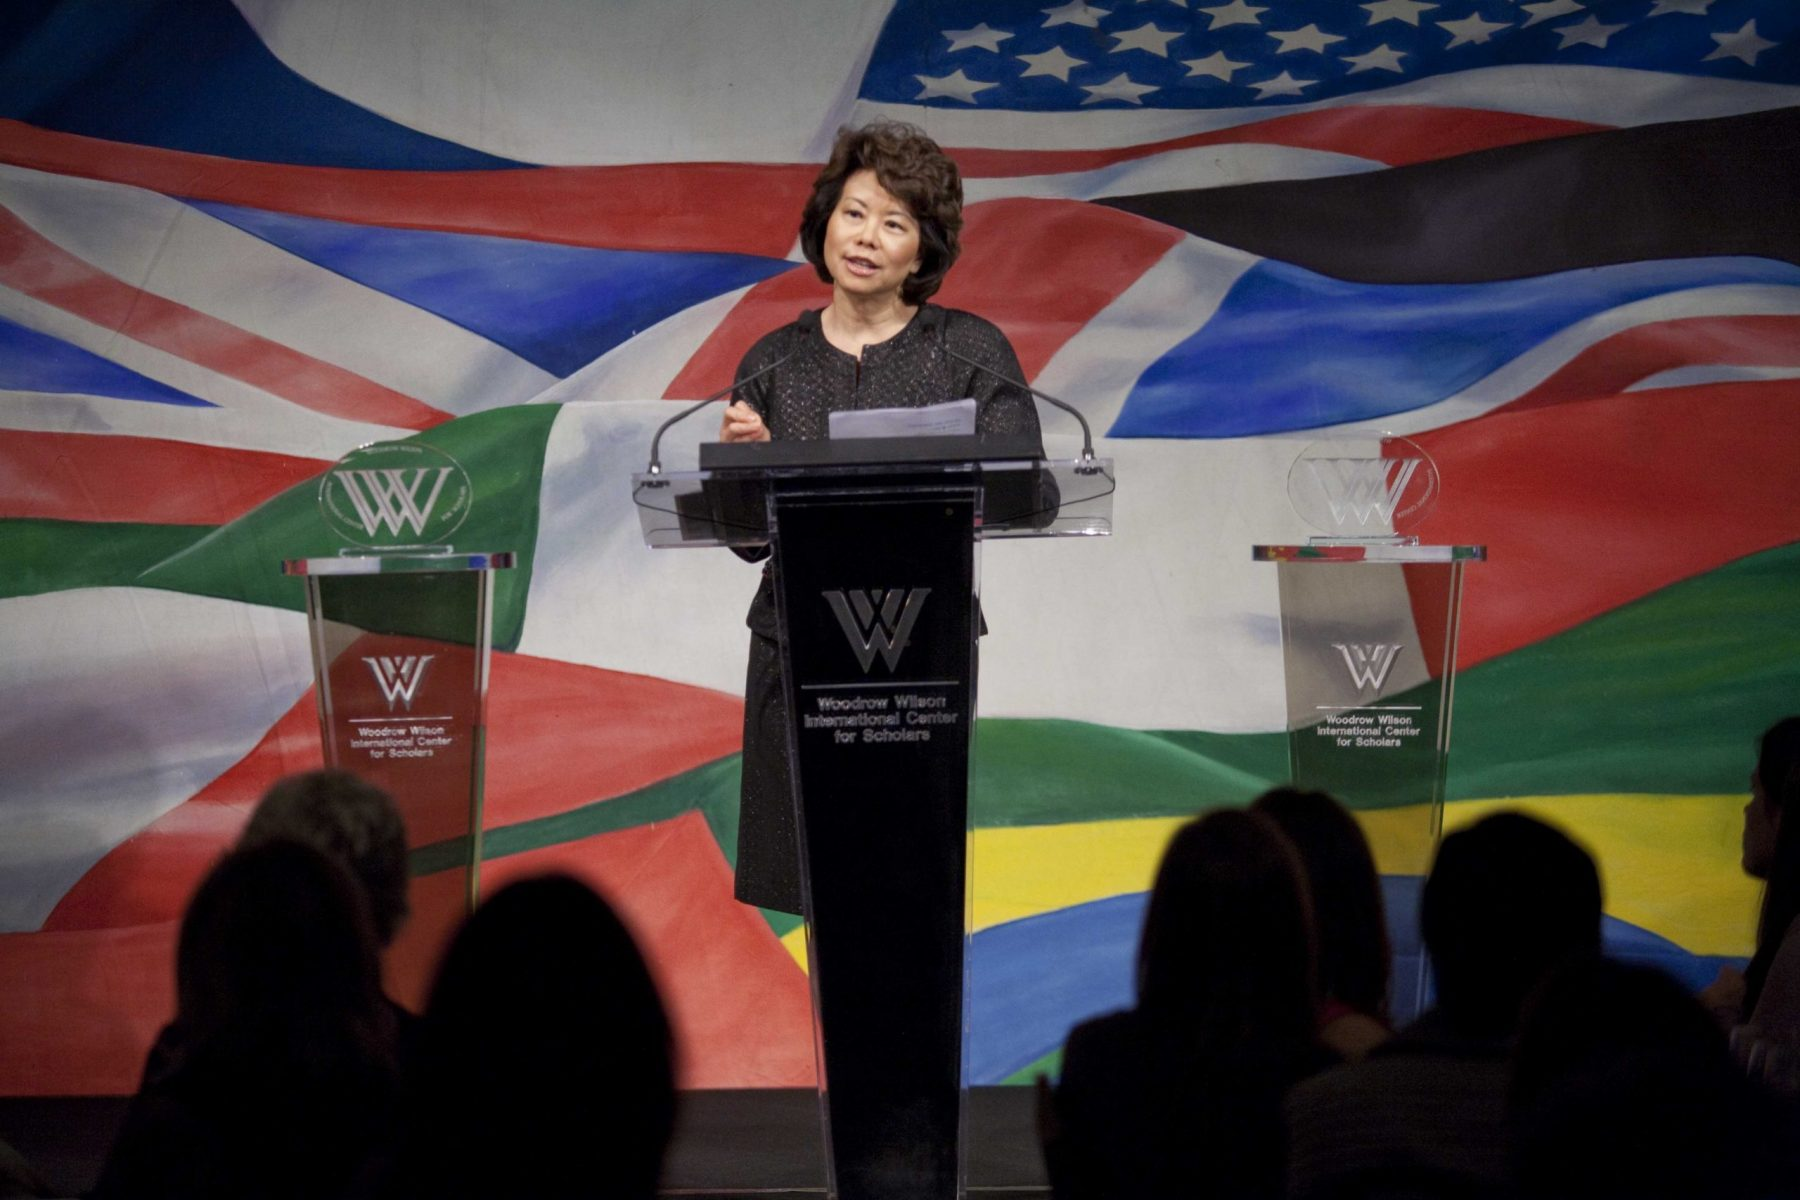 The Woodrow Wilson Center for Public Policy honored The Honorable Elaine Chao with the Woodrow Wilson Distinguished Public Service Award.